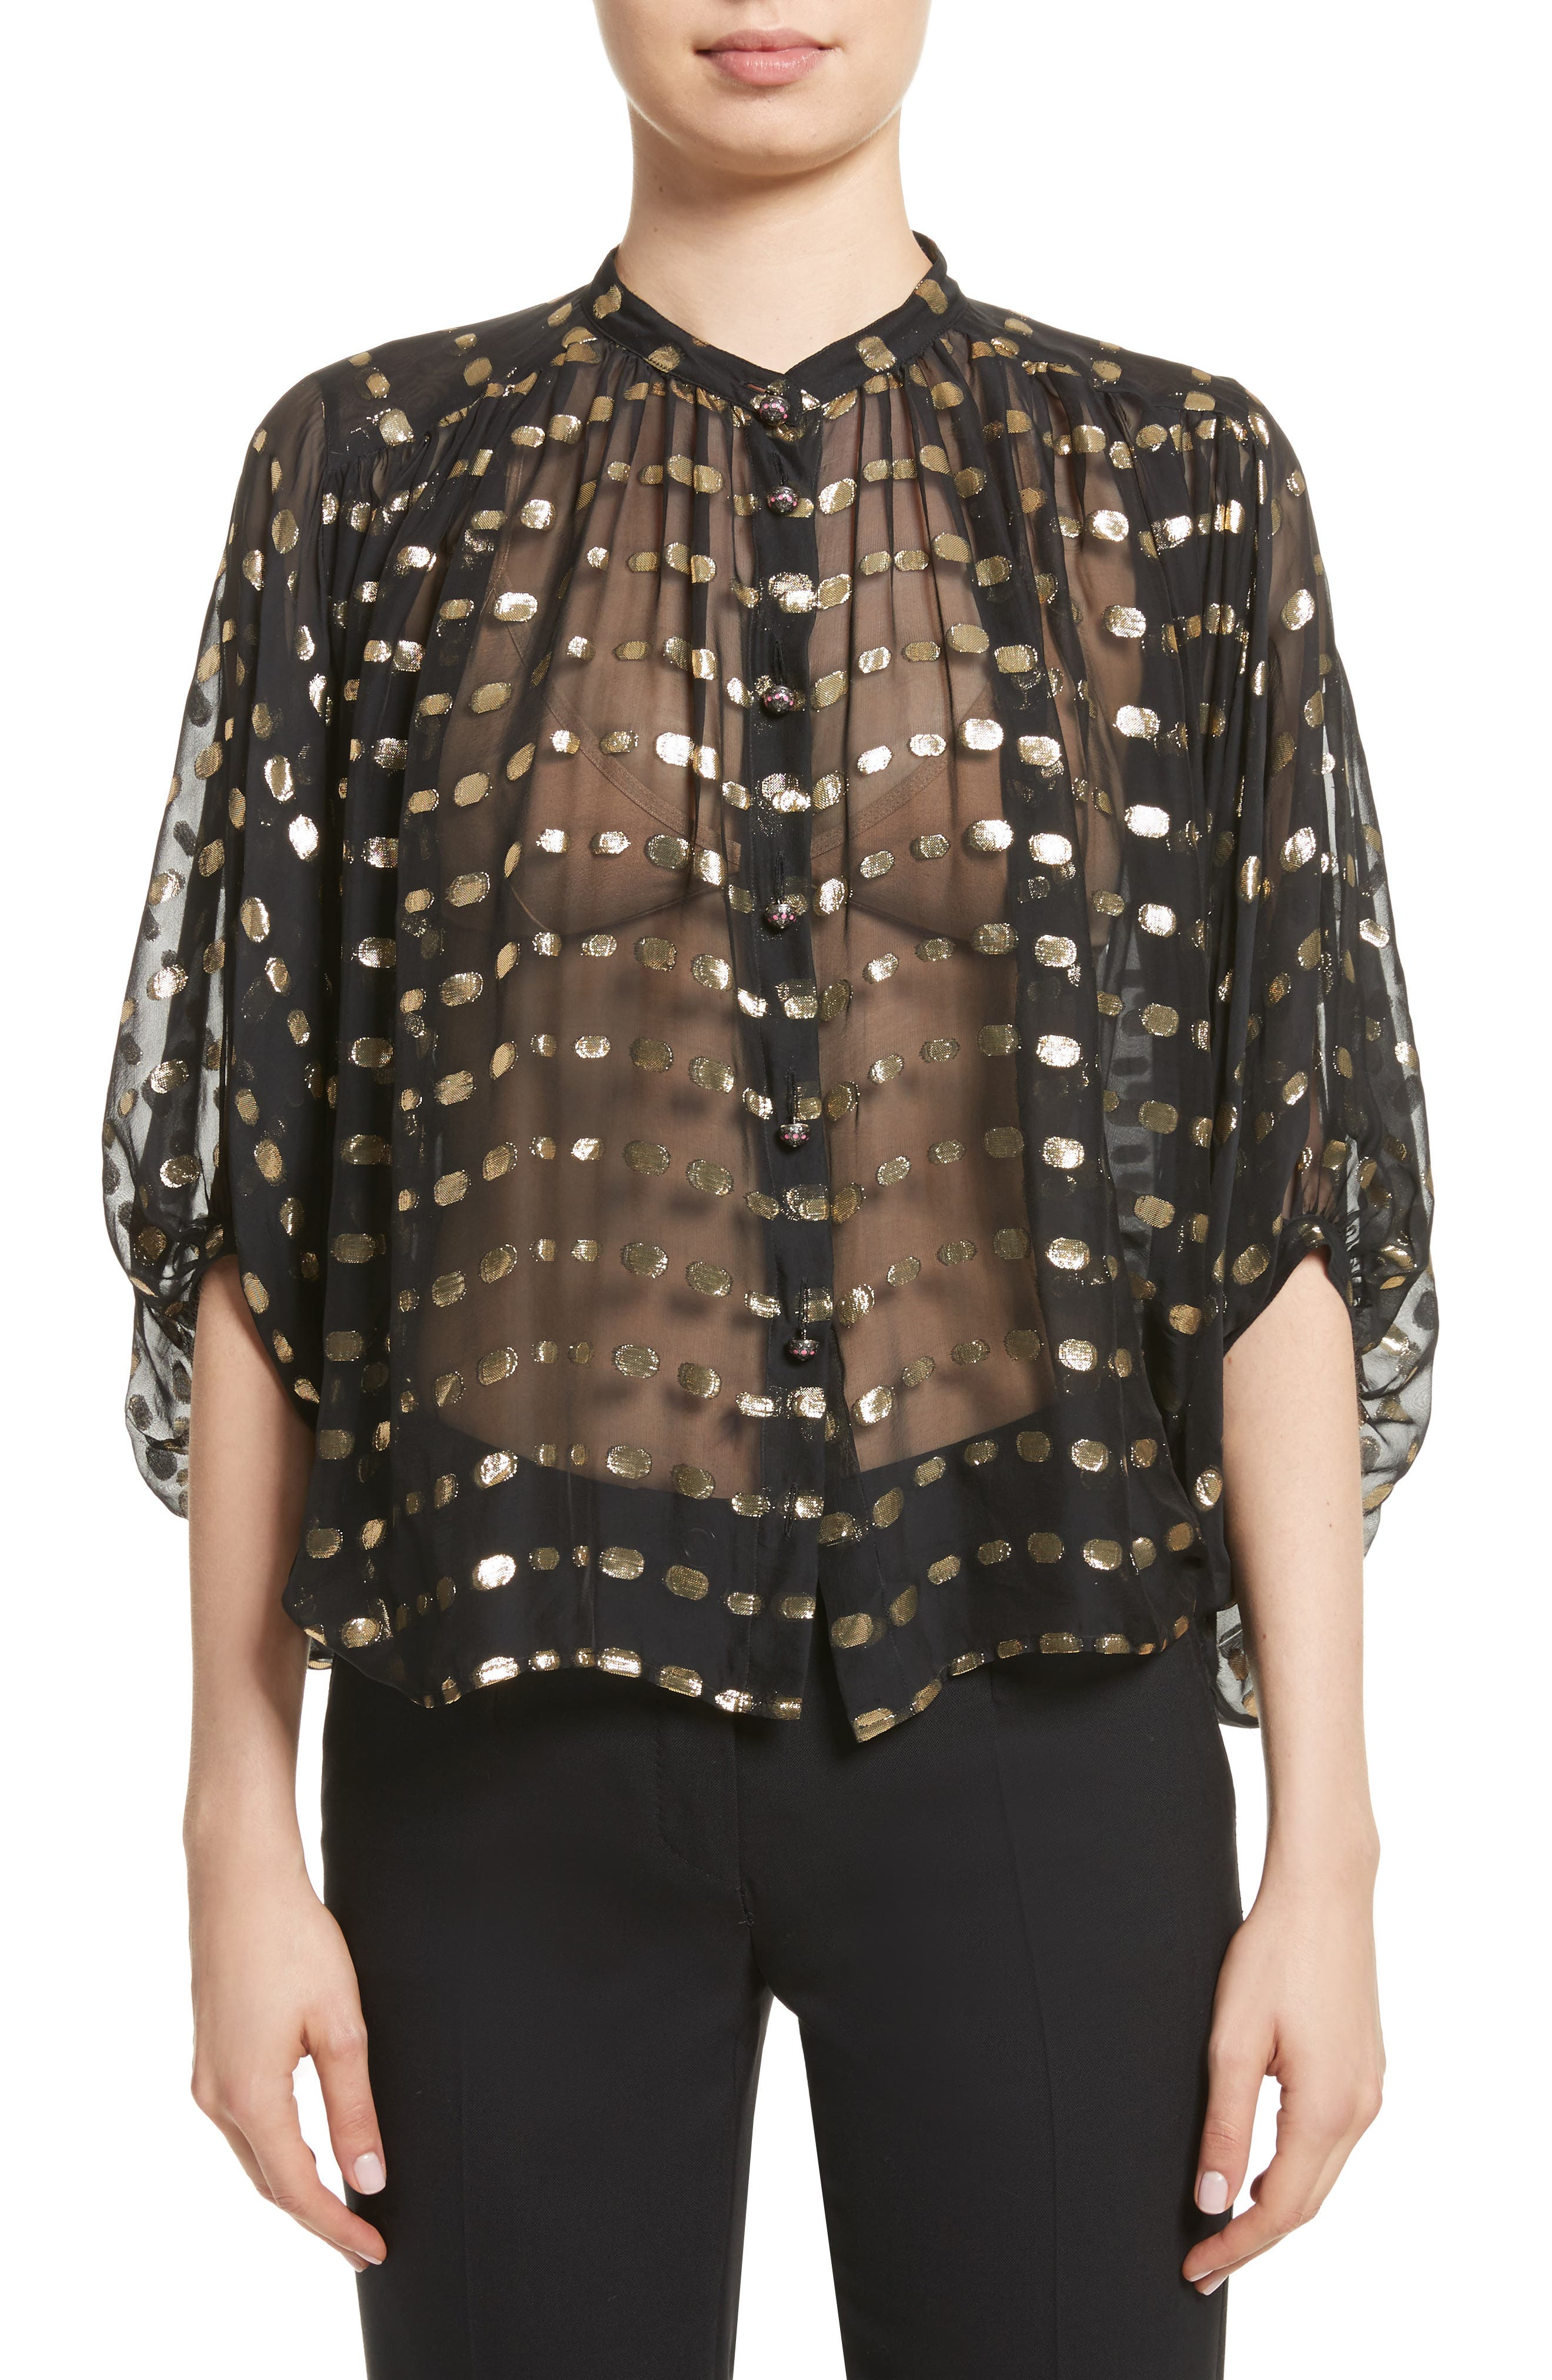 Etro Metallic Dot Sheer Blouse